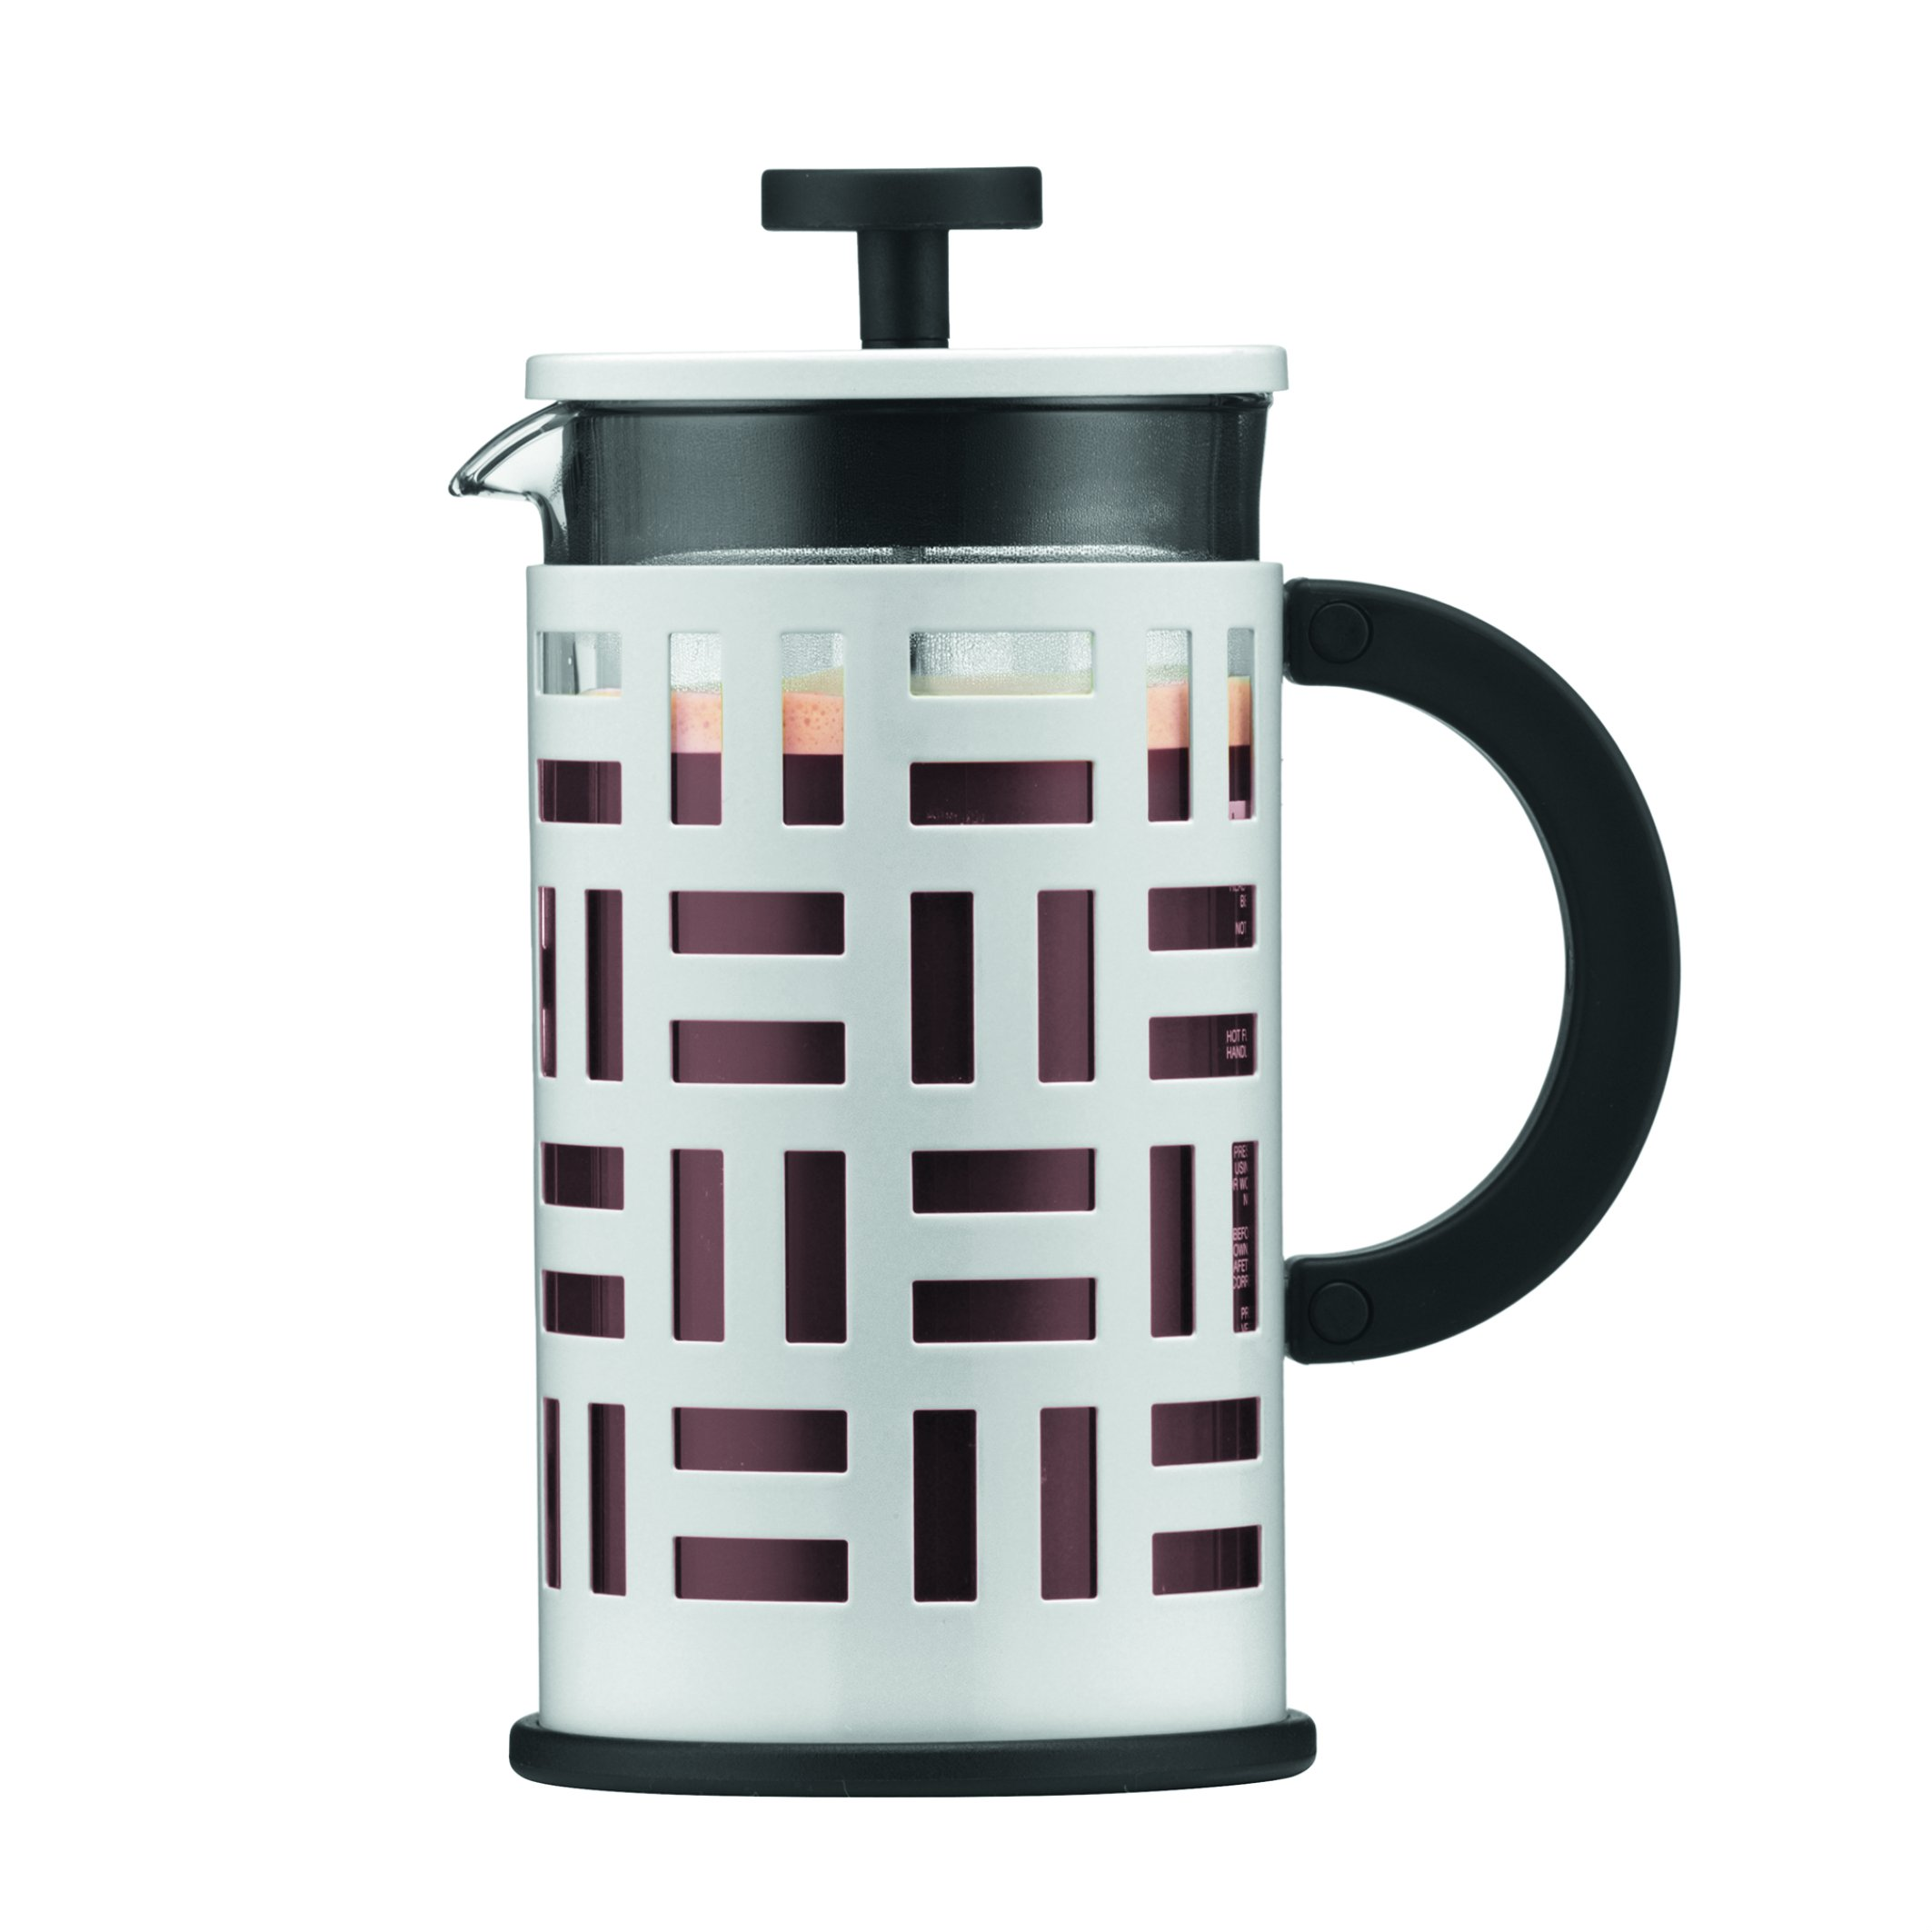 Bodum 11195-913 Eileen 8-Cup Coffee Maker, 34-Ounce, Off-White